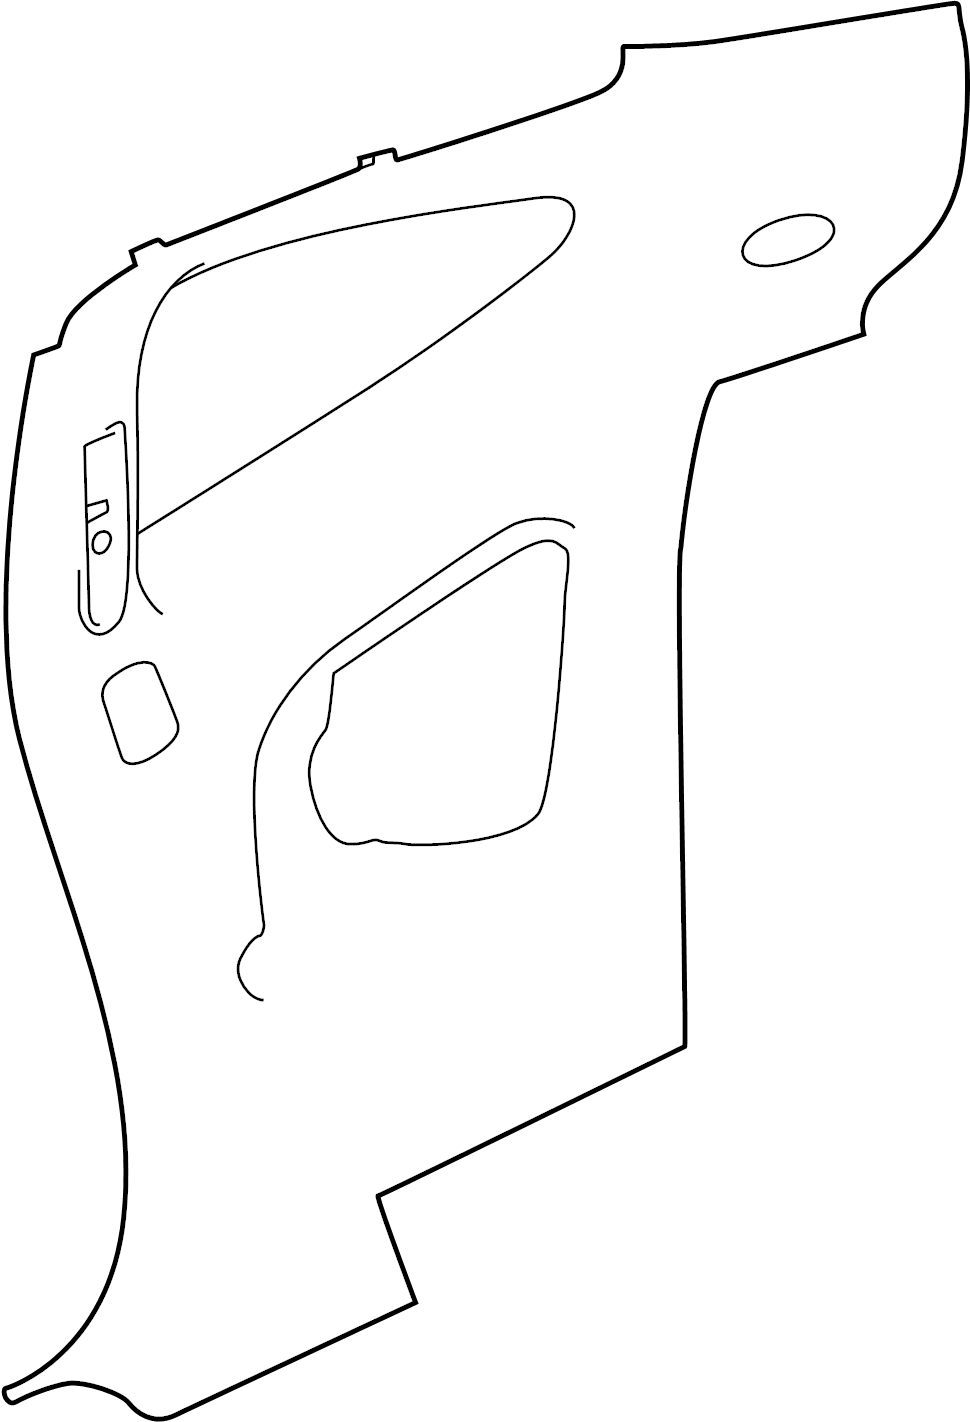 jaguar xk8 seat parts diagram